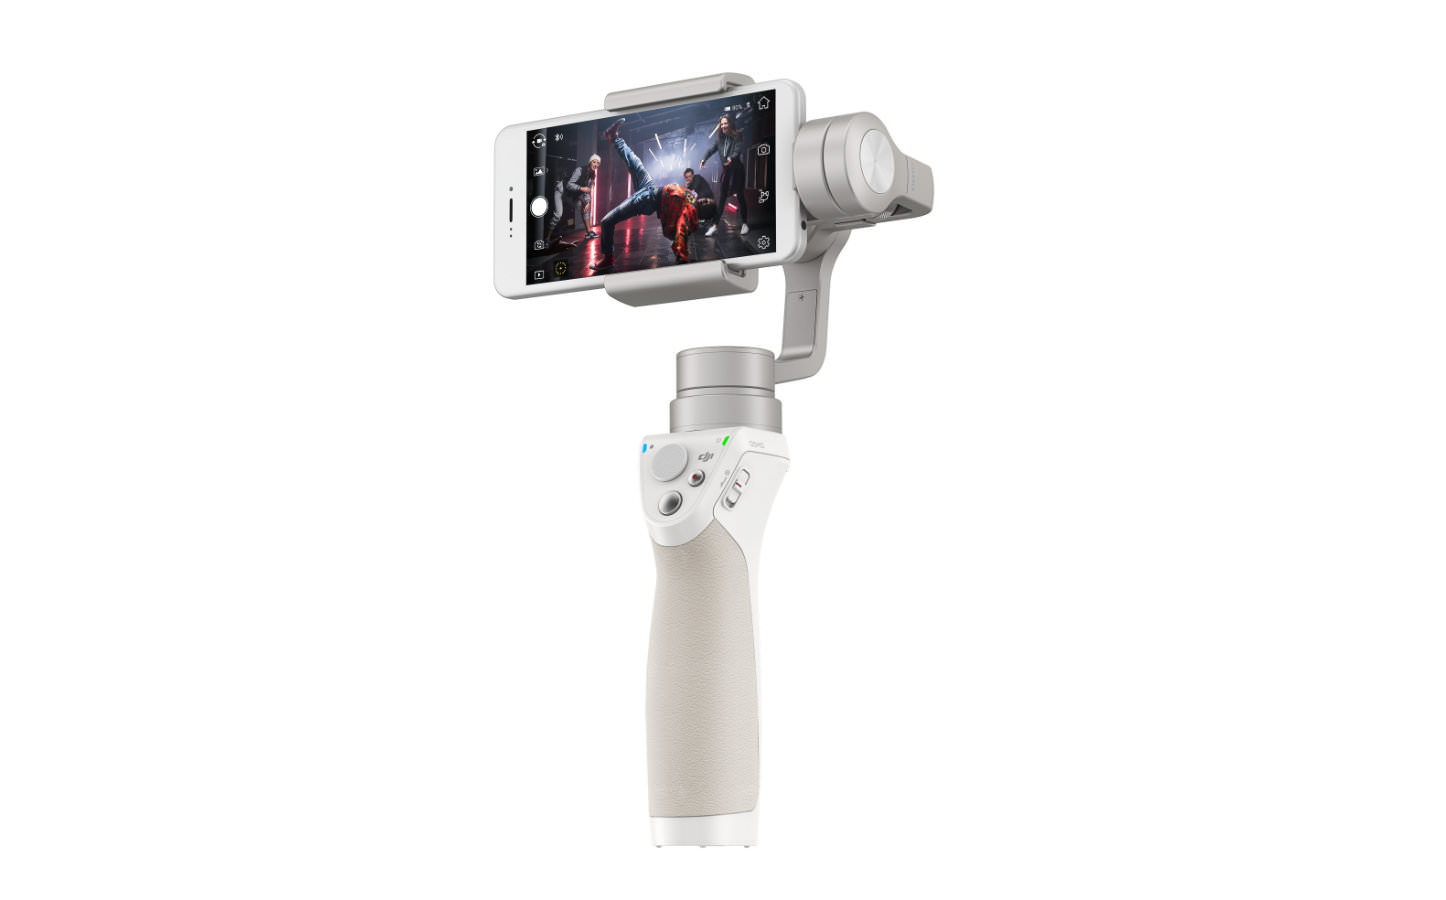 Dji osmo mobile silver edition